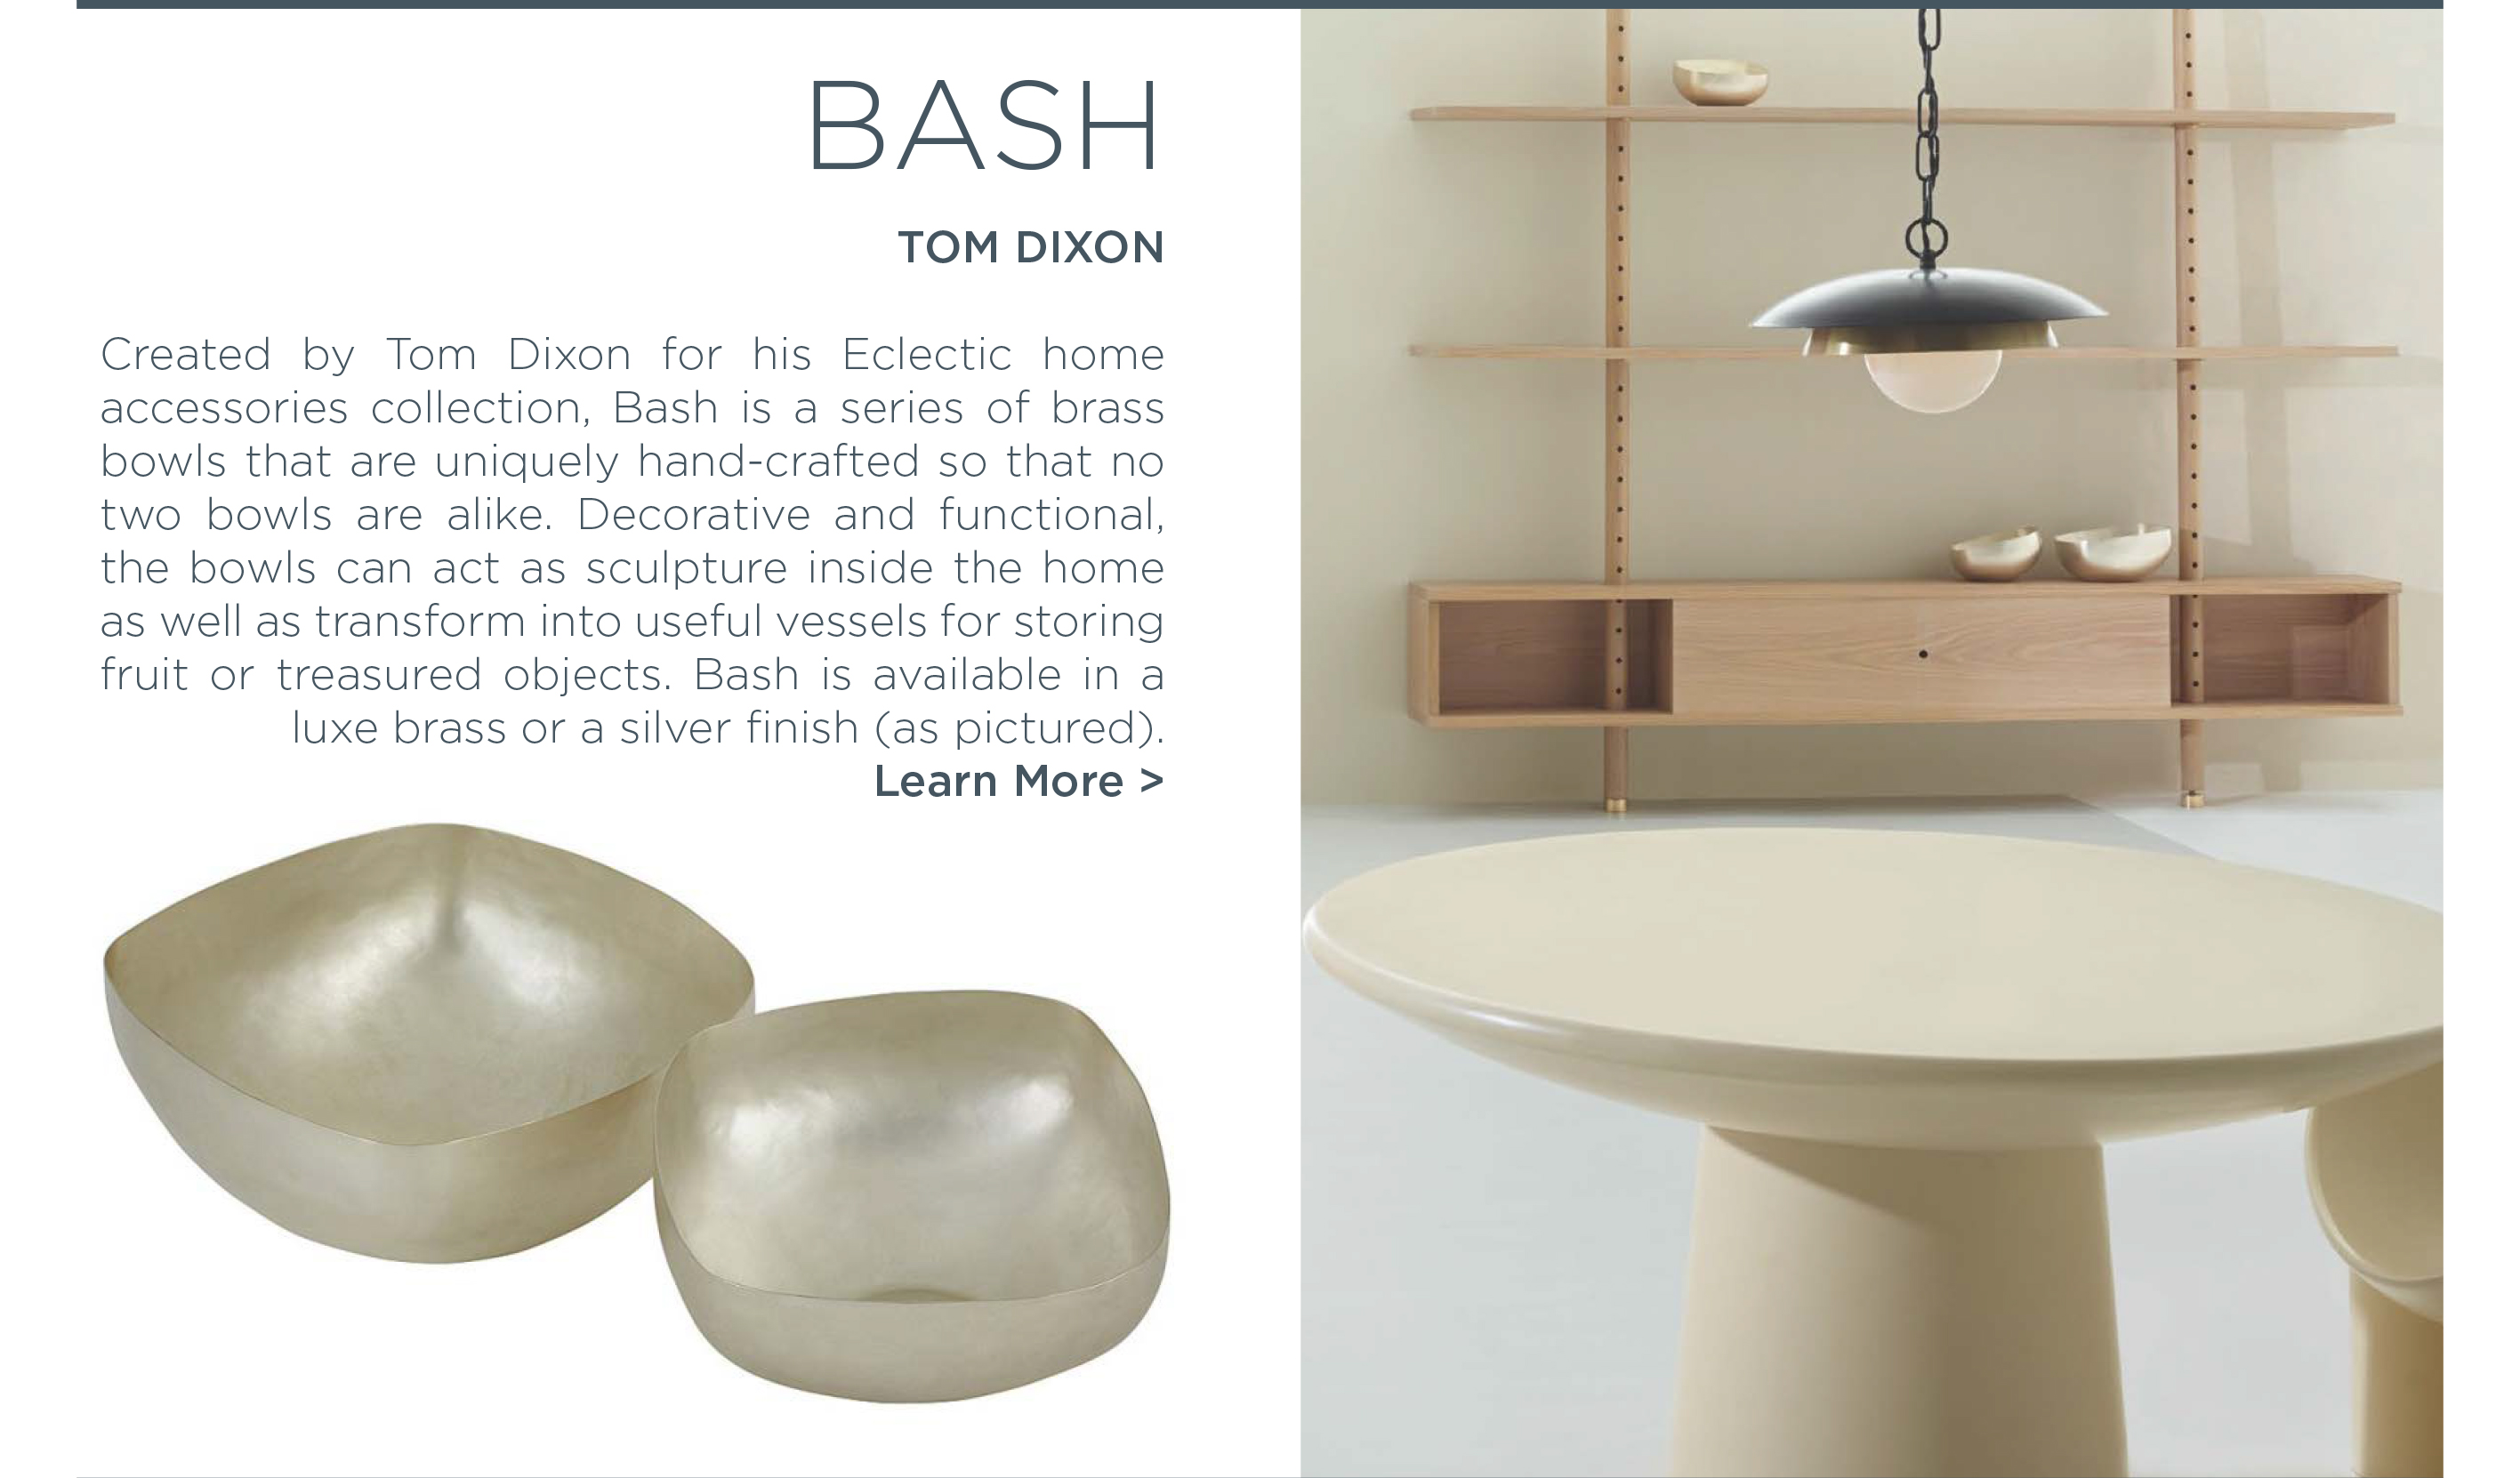 Bash brass silver bowl collection tom dixon studio eclectic home accessories collection suite ny new york